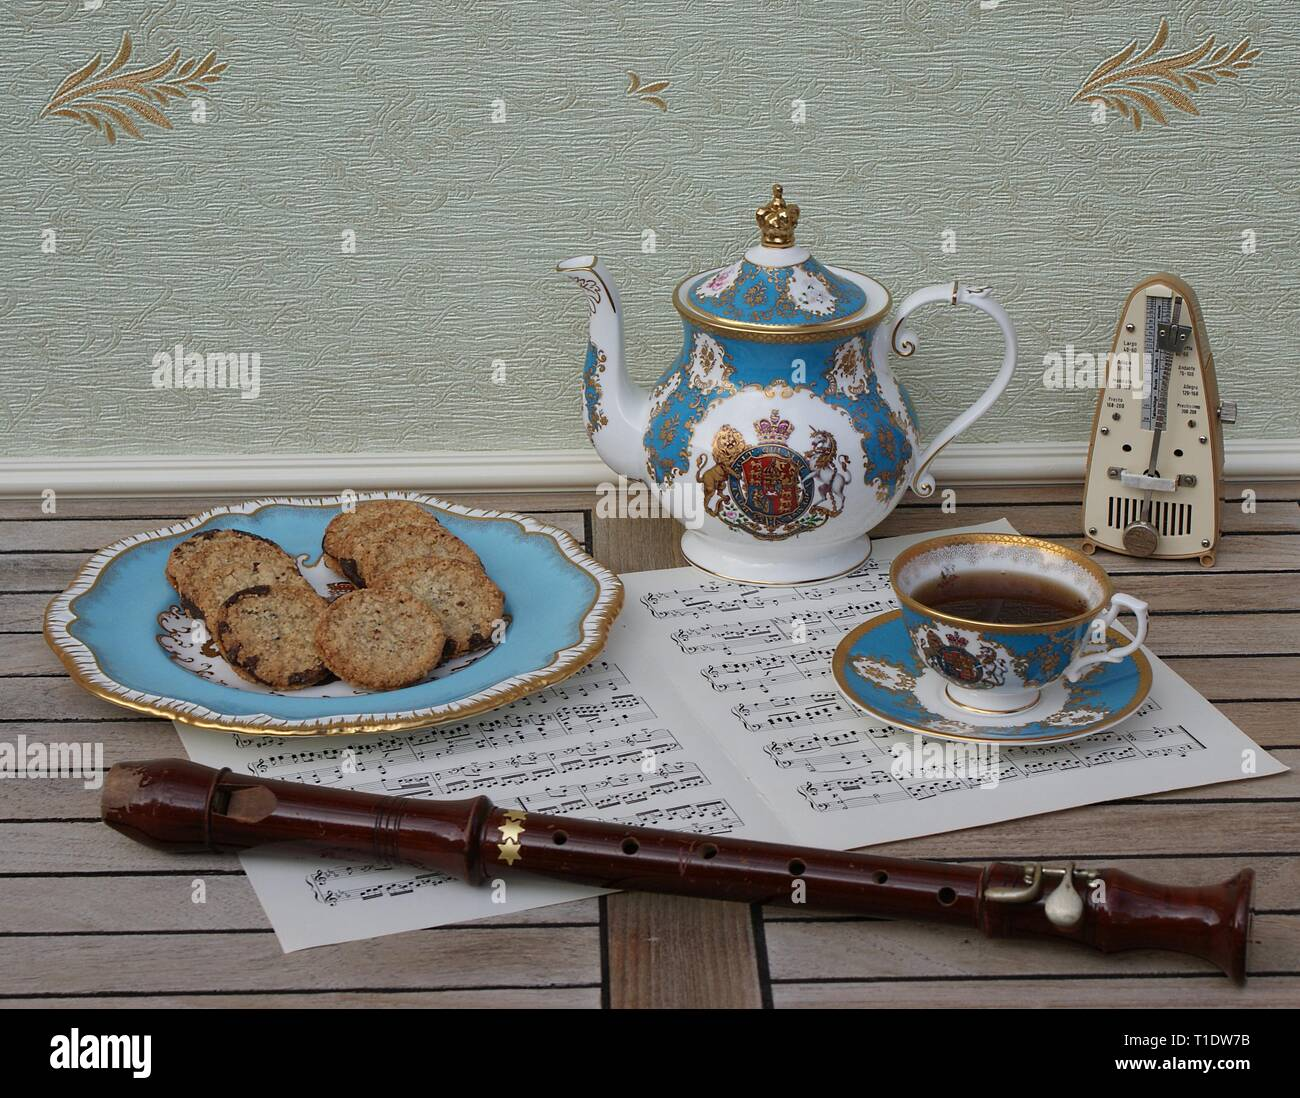 English teacup with saucer, teapot and a cake plate with cookies, fine bone china porcelain, metronome for music and a block flute on a sheet of music - Stock Image